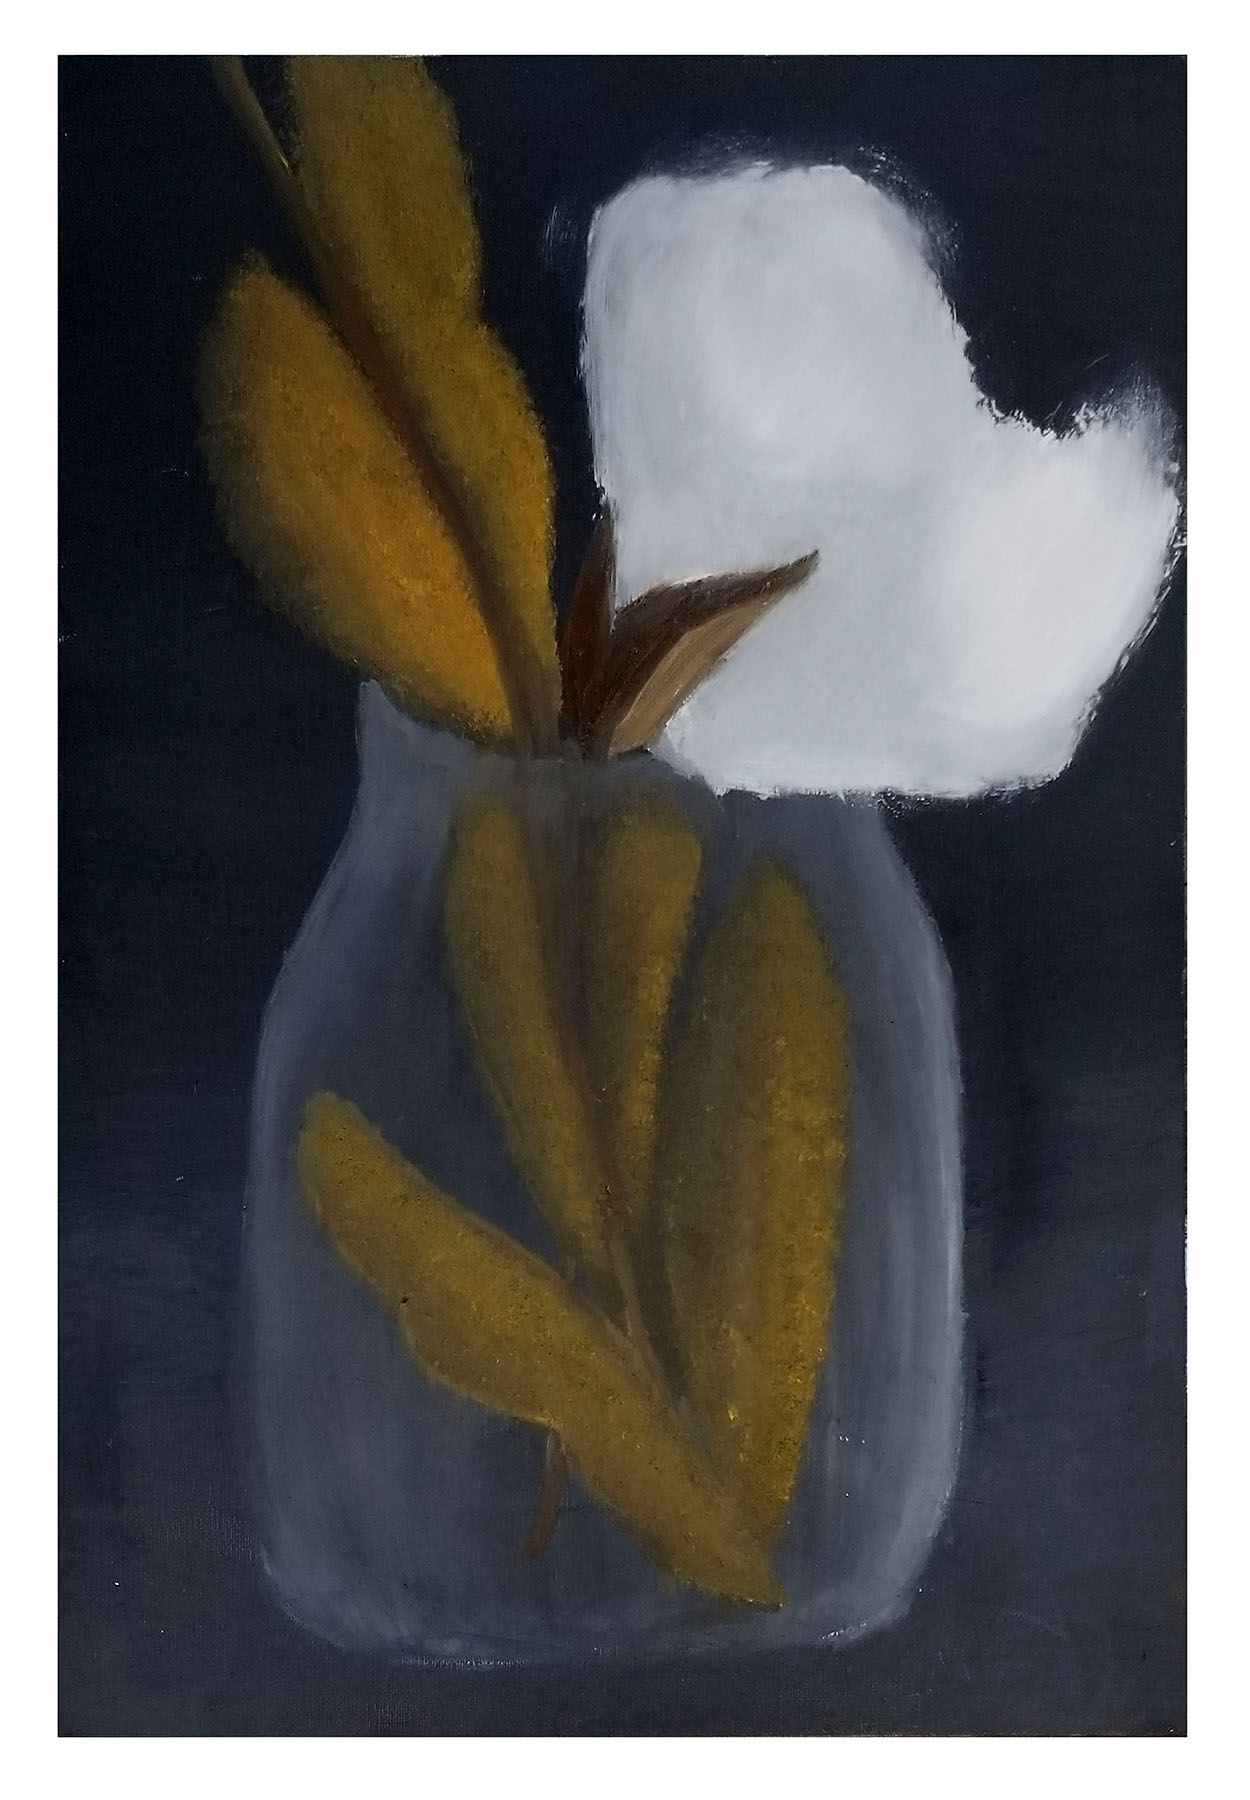 Painting of a glass jar with green plant and a large white cotton bloom.